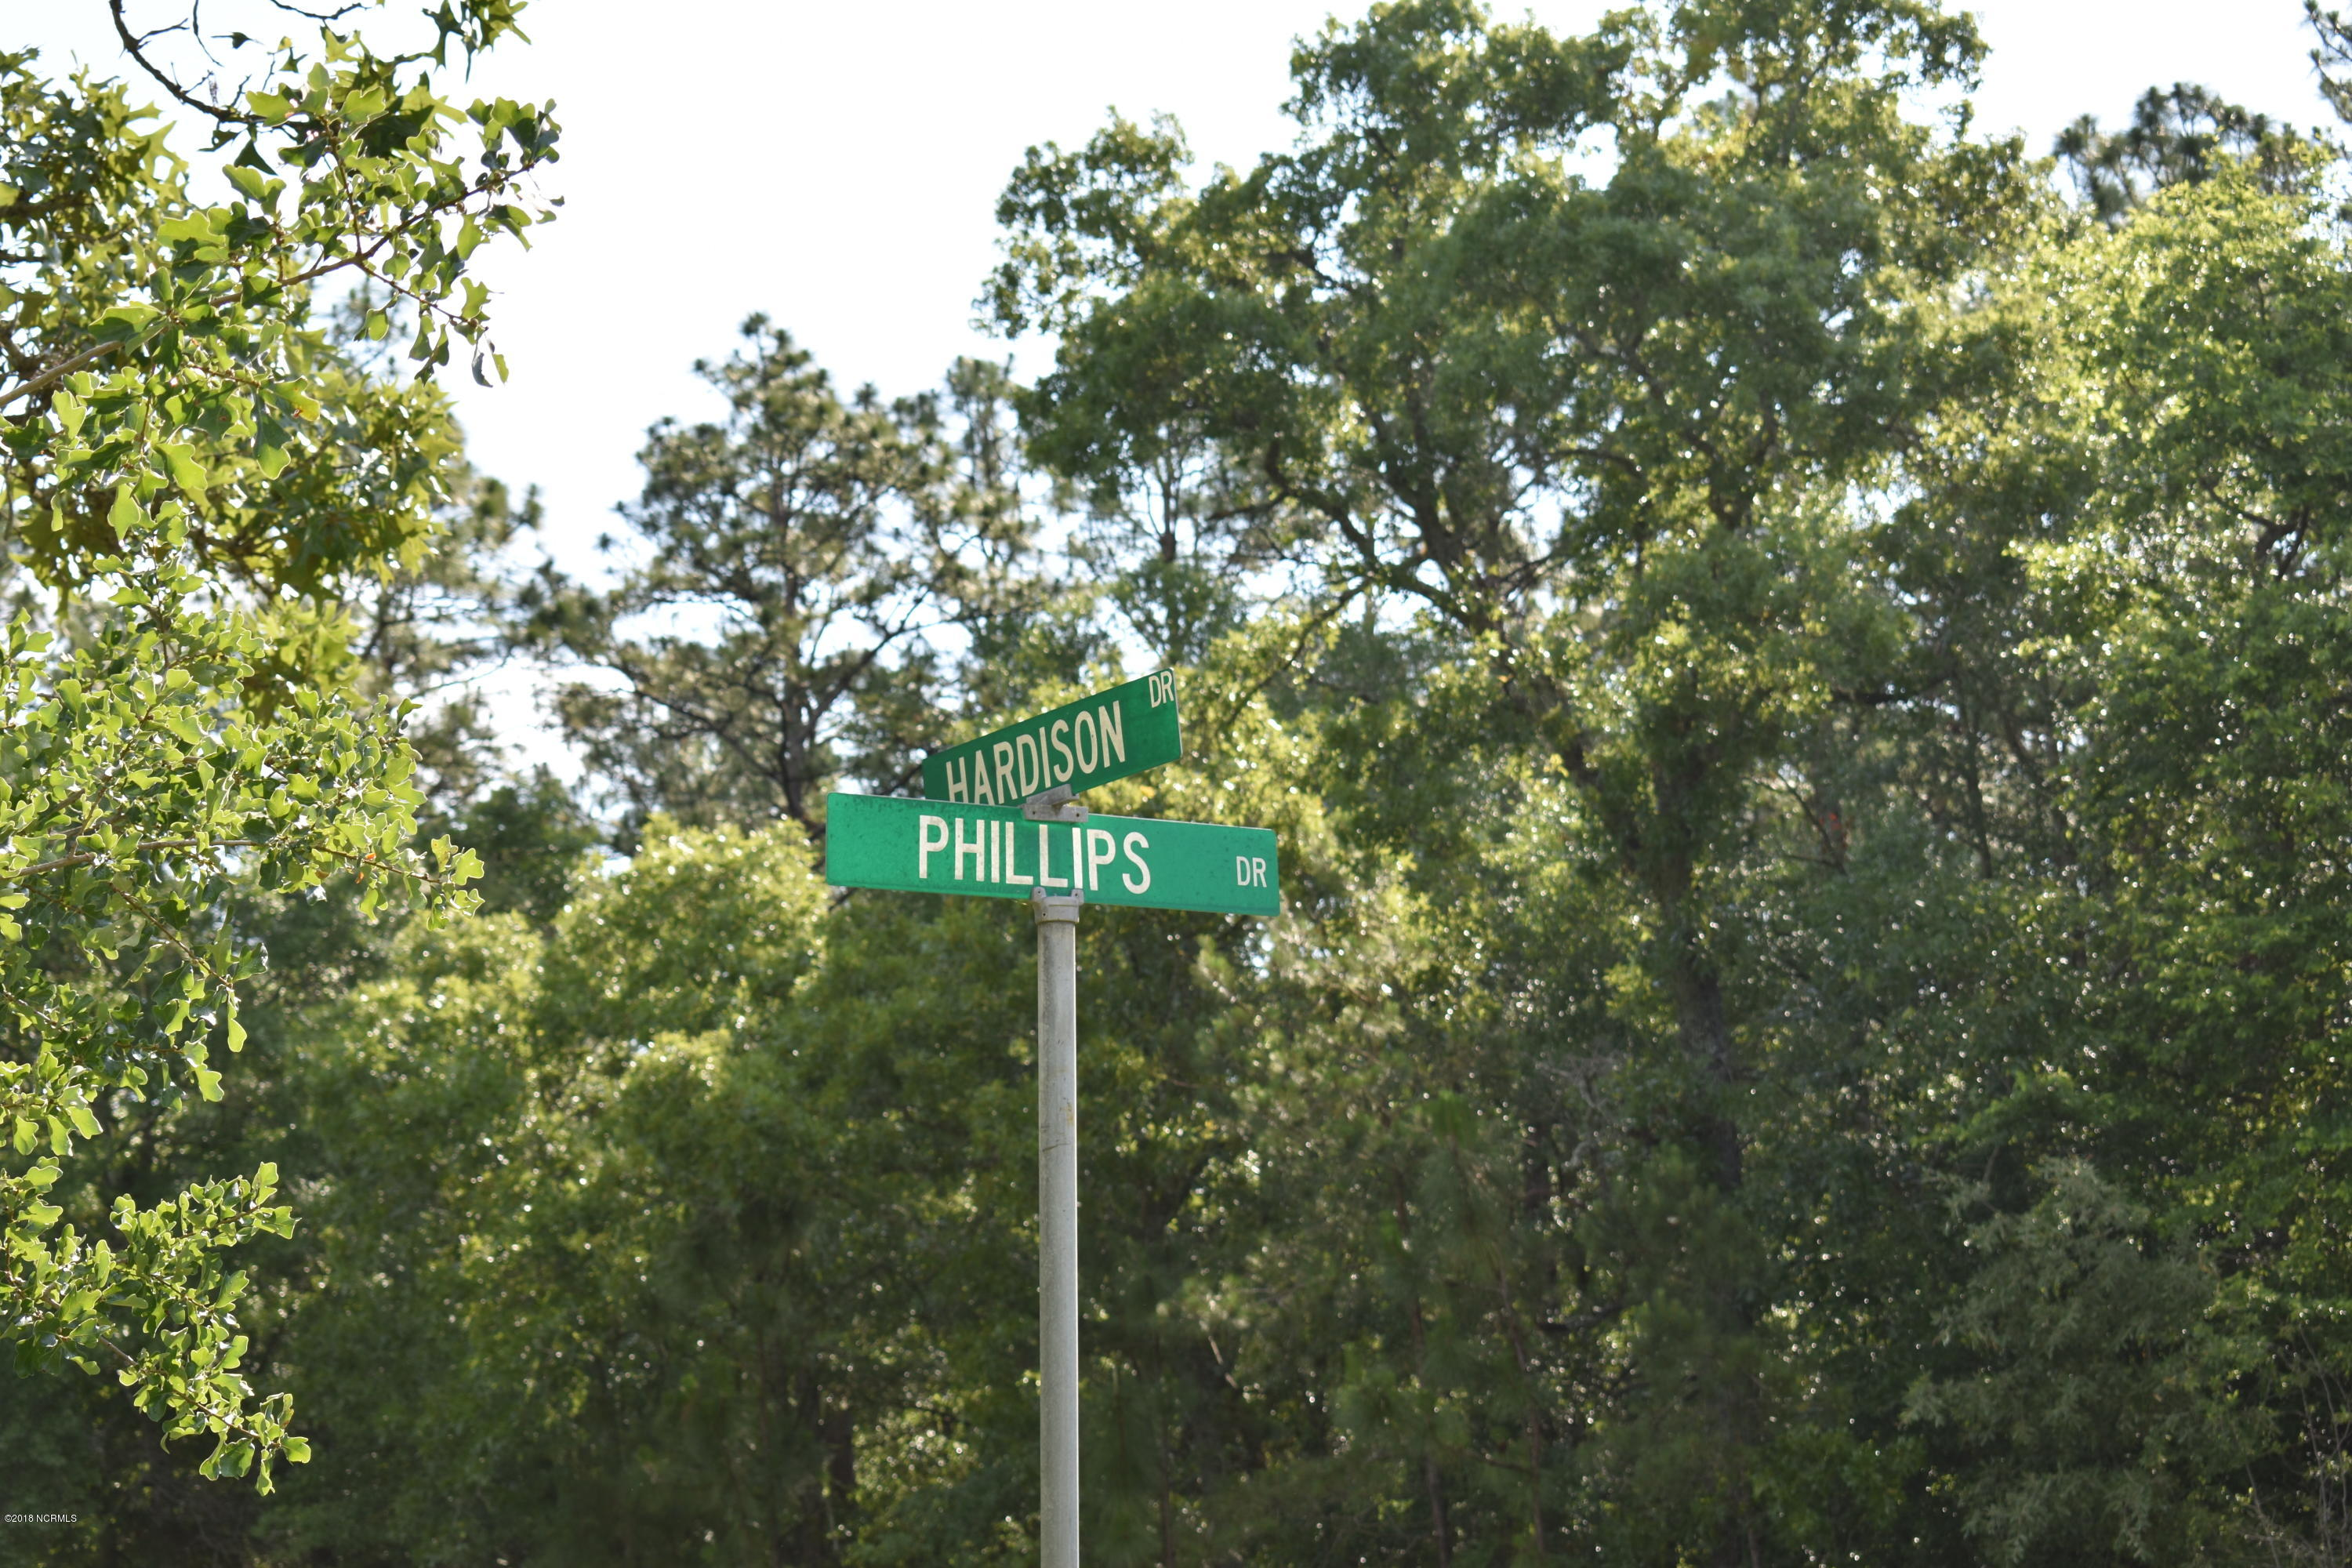 Lot 14 Phillips Drive, Minnesott Beach, North Carolina 28510, ,Residential land,For sale,Phillips,100119046